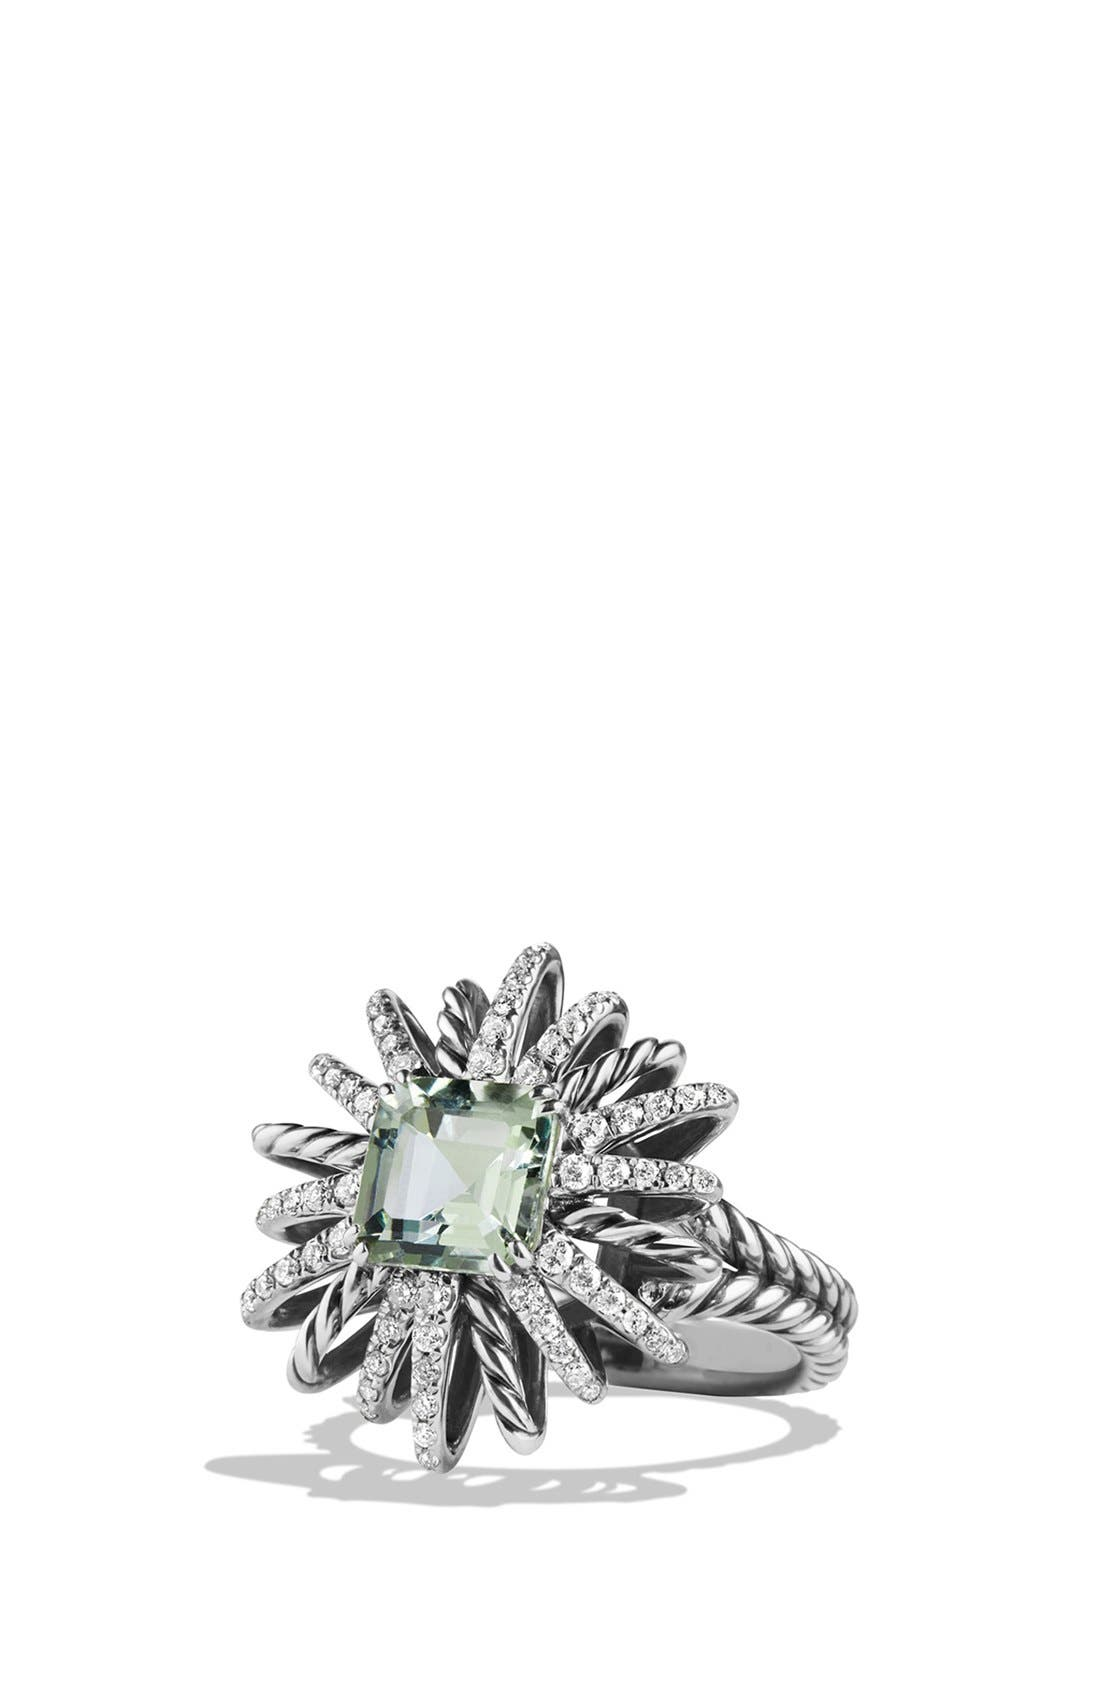 Main Image - David Yurman 'Starburst' Ring